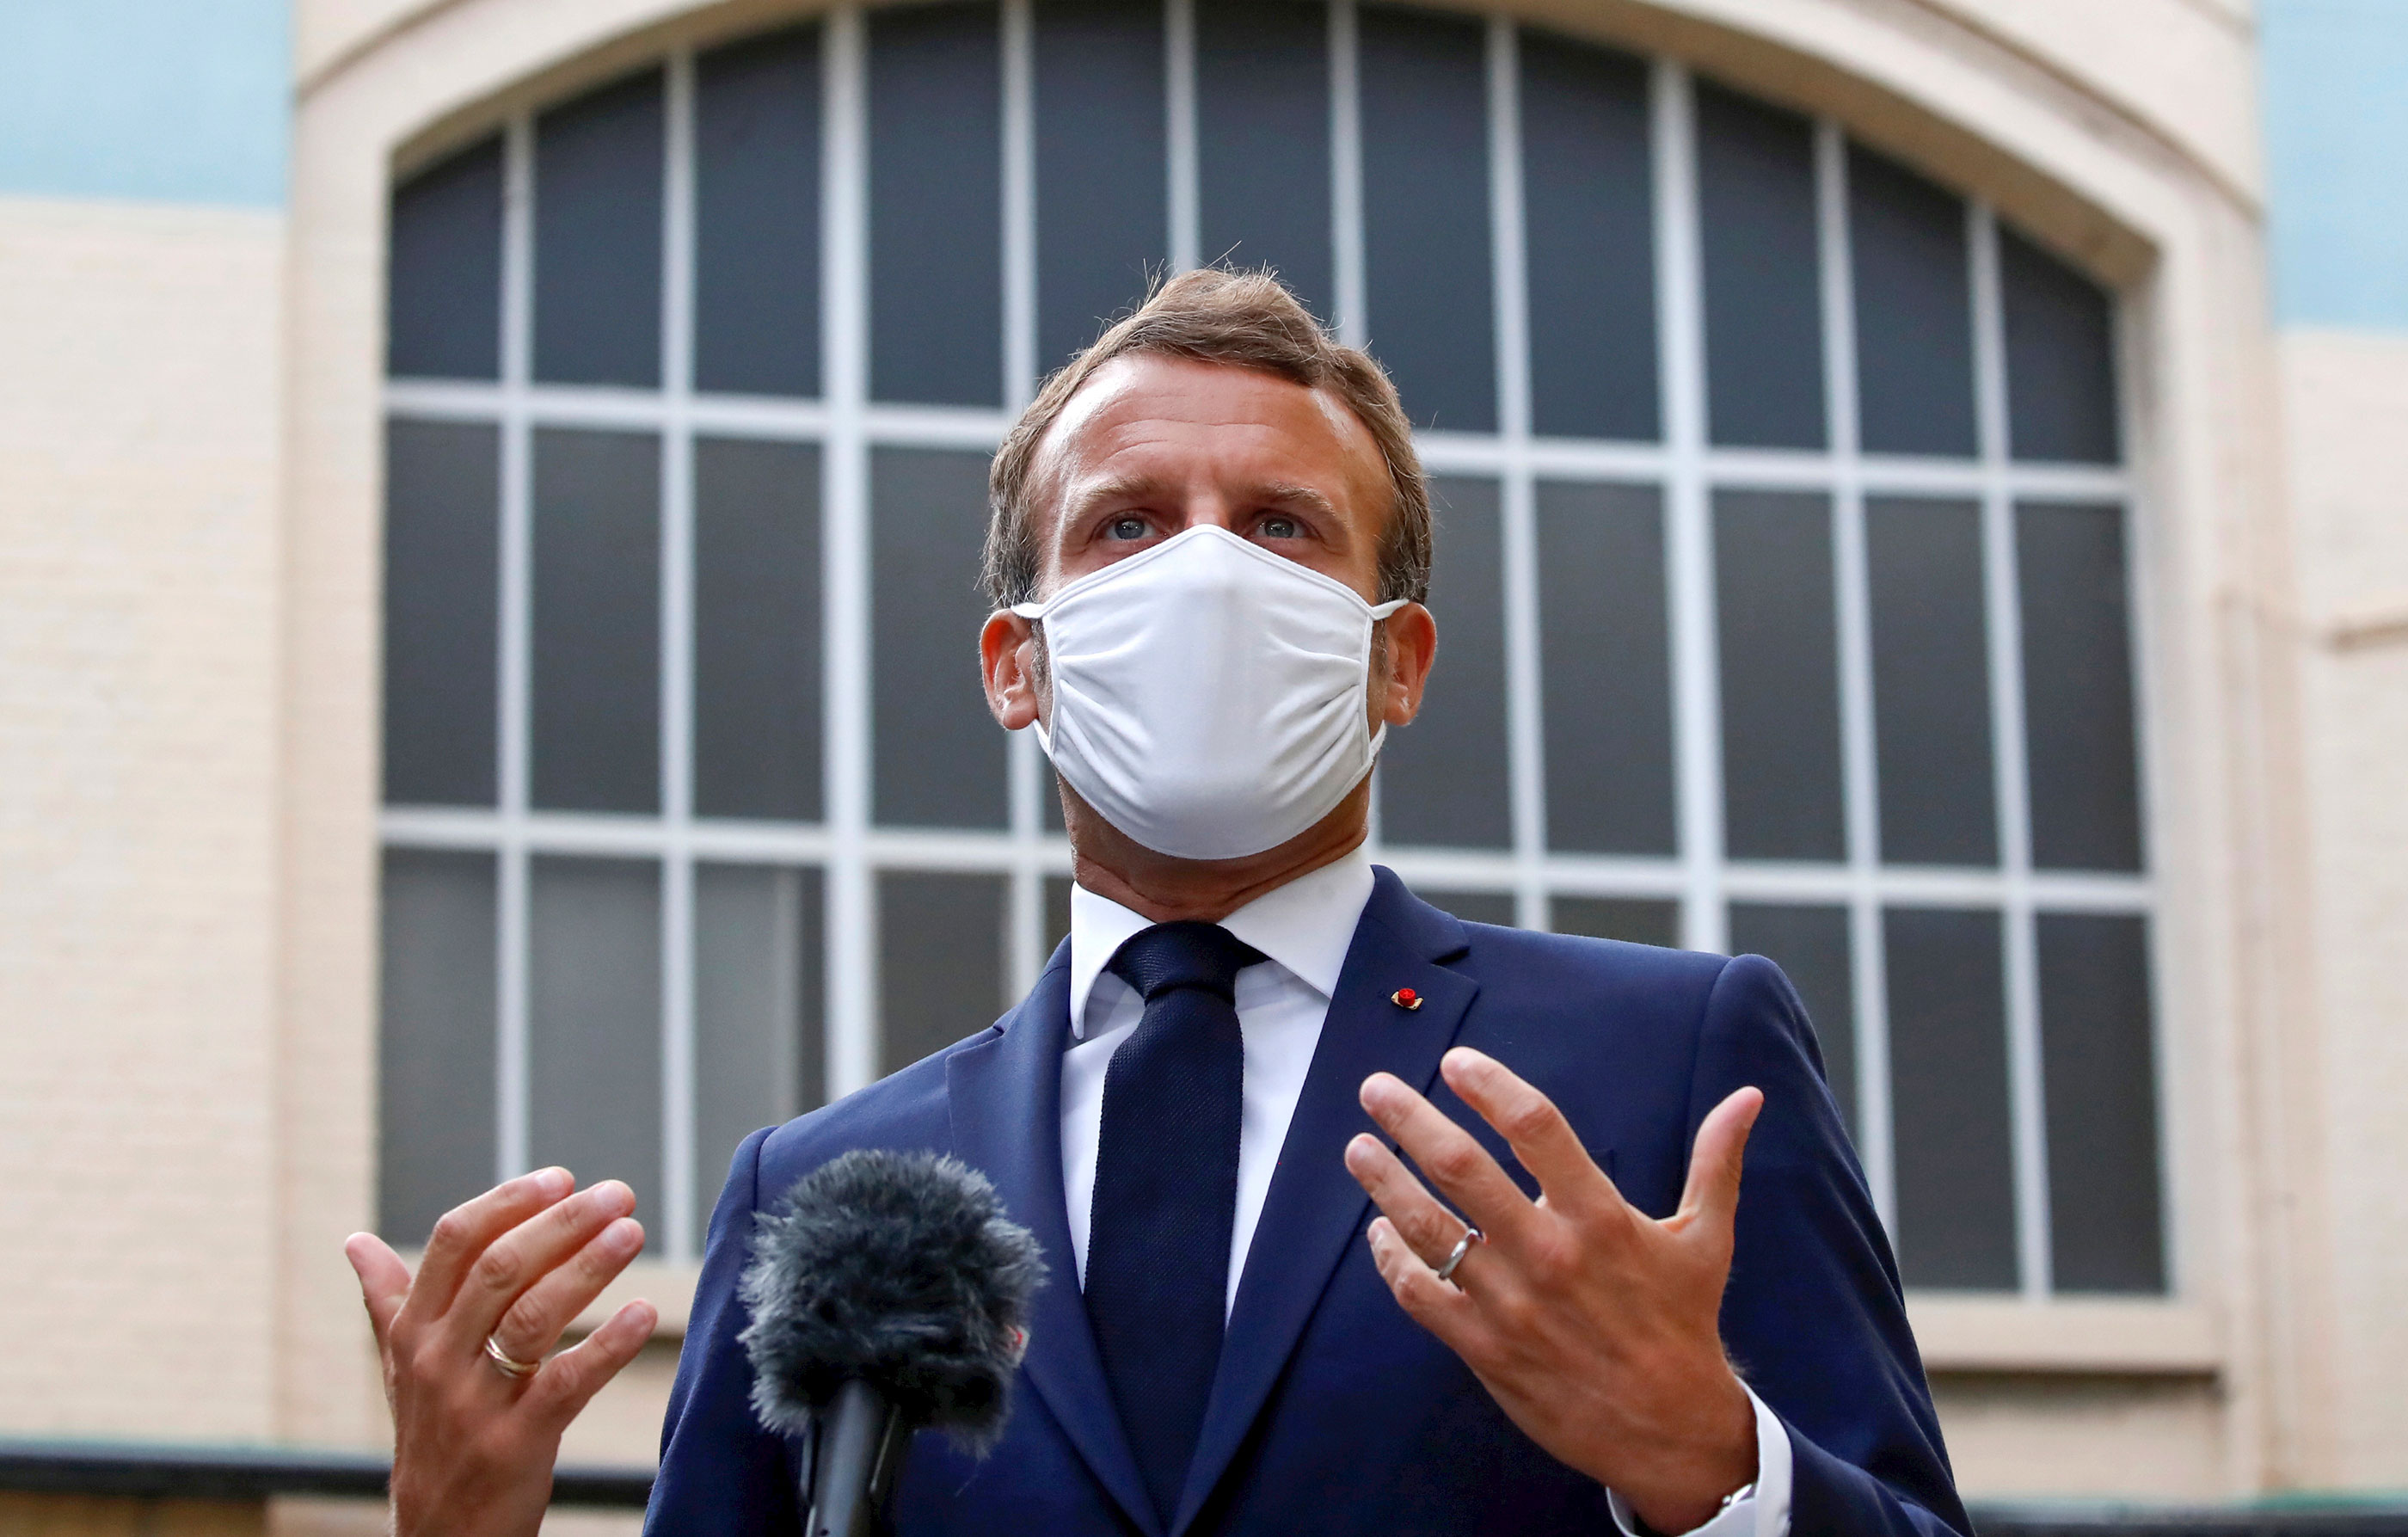 French President Emmanuel Macron speaks to the media as he visits a site of pharmaceutical group Seqens on August 28 in Paris, France.